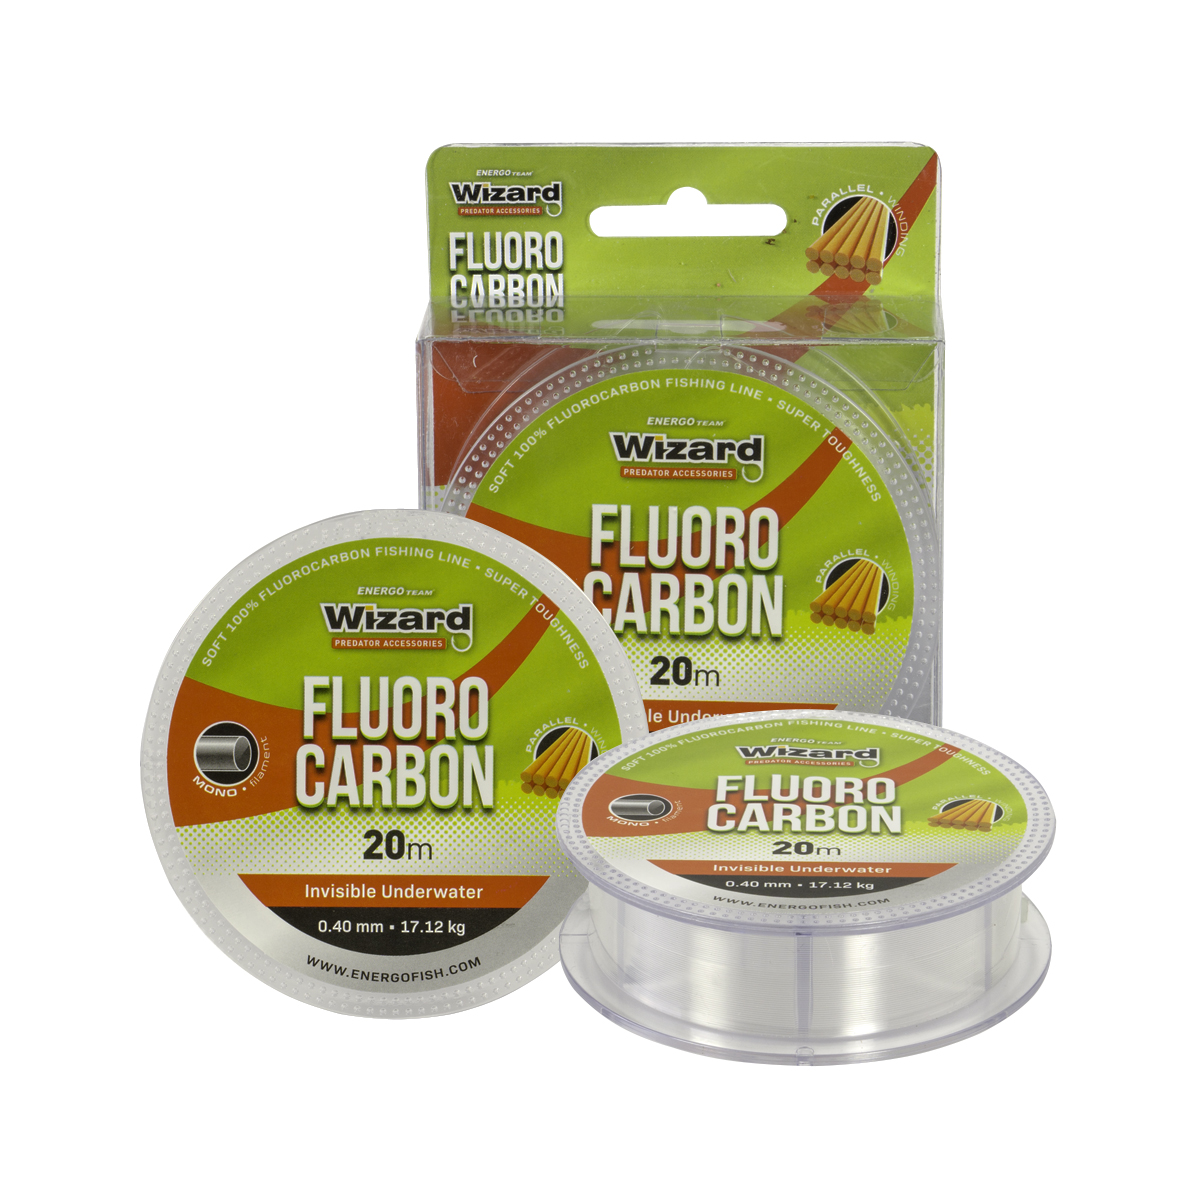 WIZARD Fluorocarbon Transparent - 0.40mm/20m/17.12kg